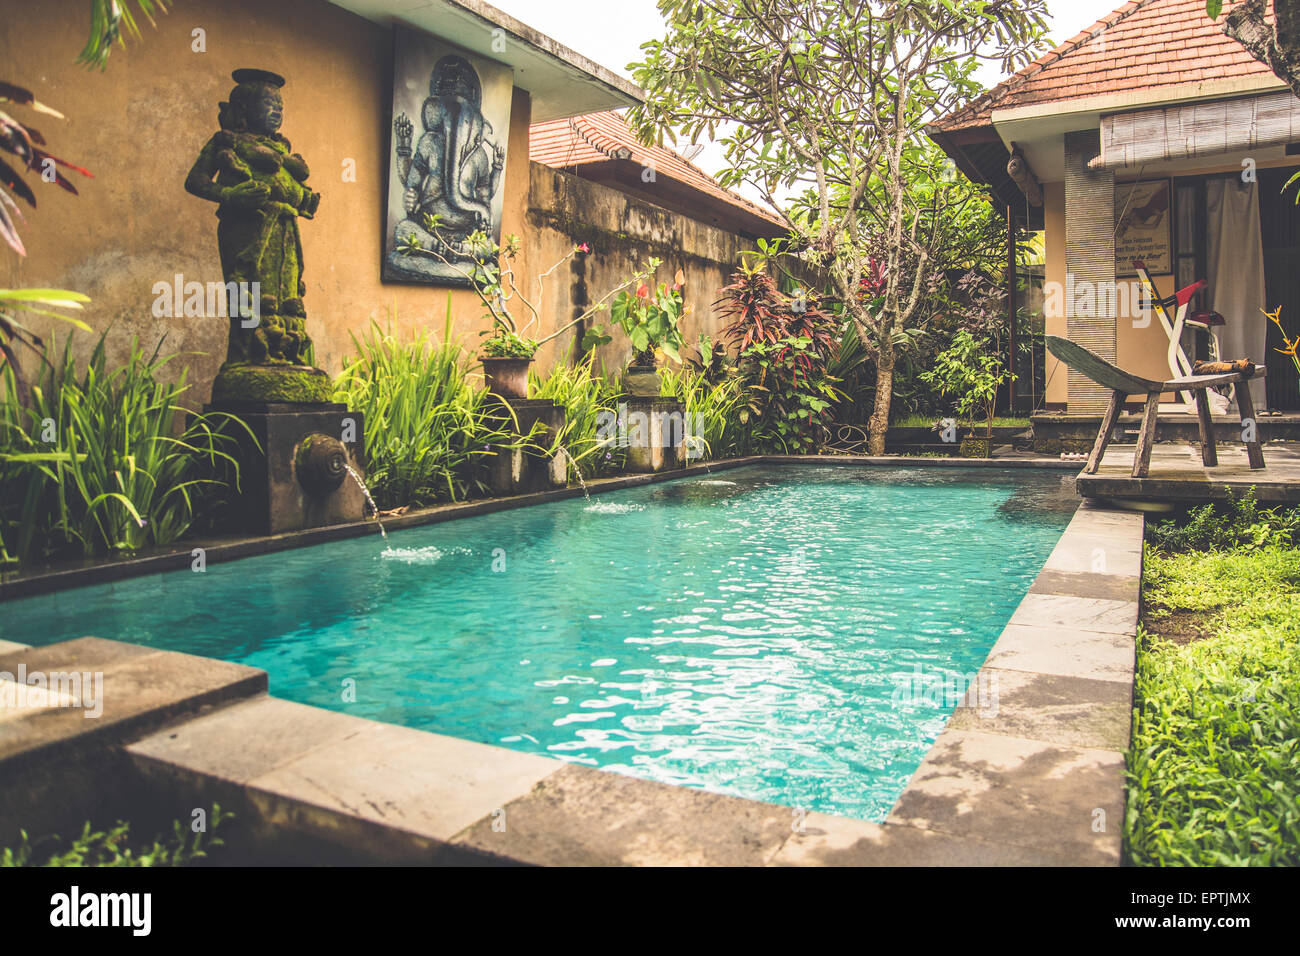 A Small Private Swimming Pool In A Home In Bali Indonesia Editorial Stock Photo Alamy